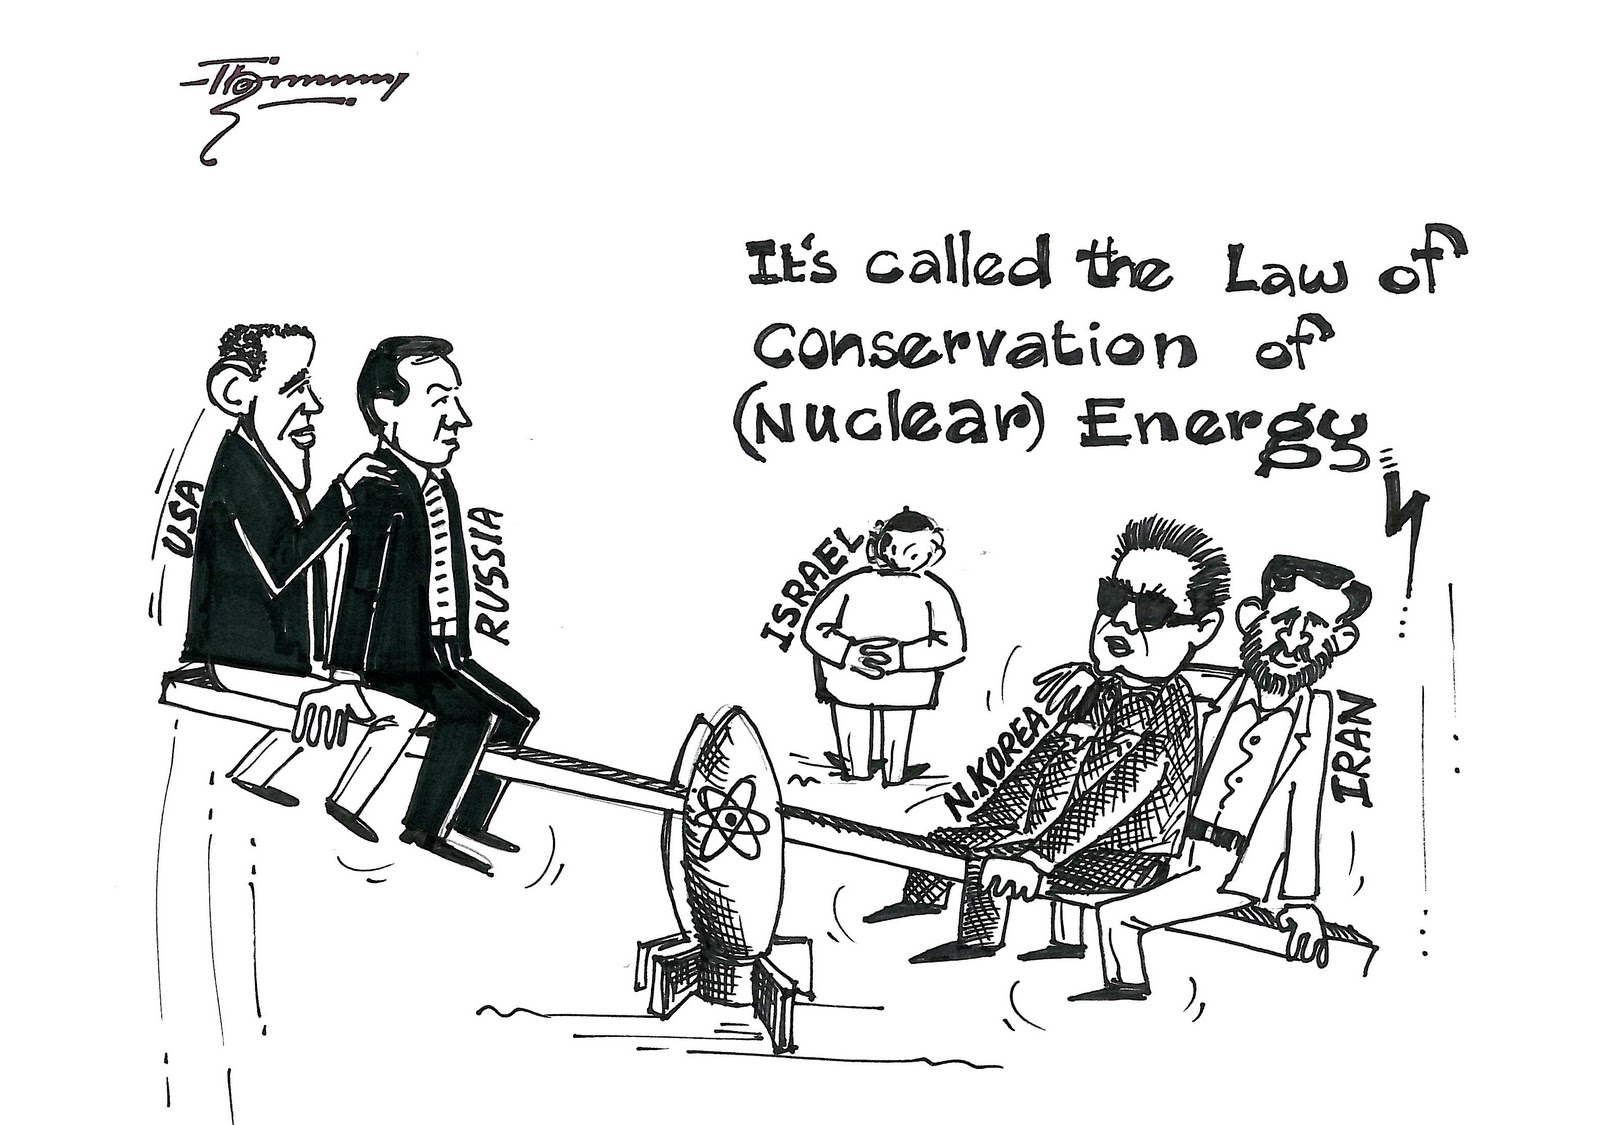 Drawn Opinions ©: The Law of Conservation of (Nuclear) Energy